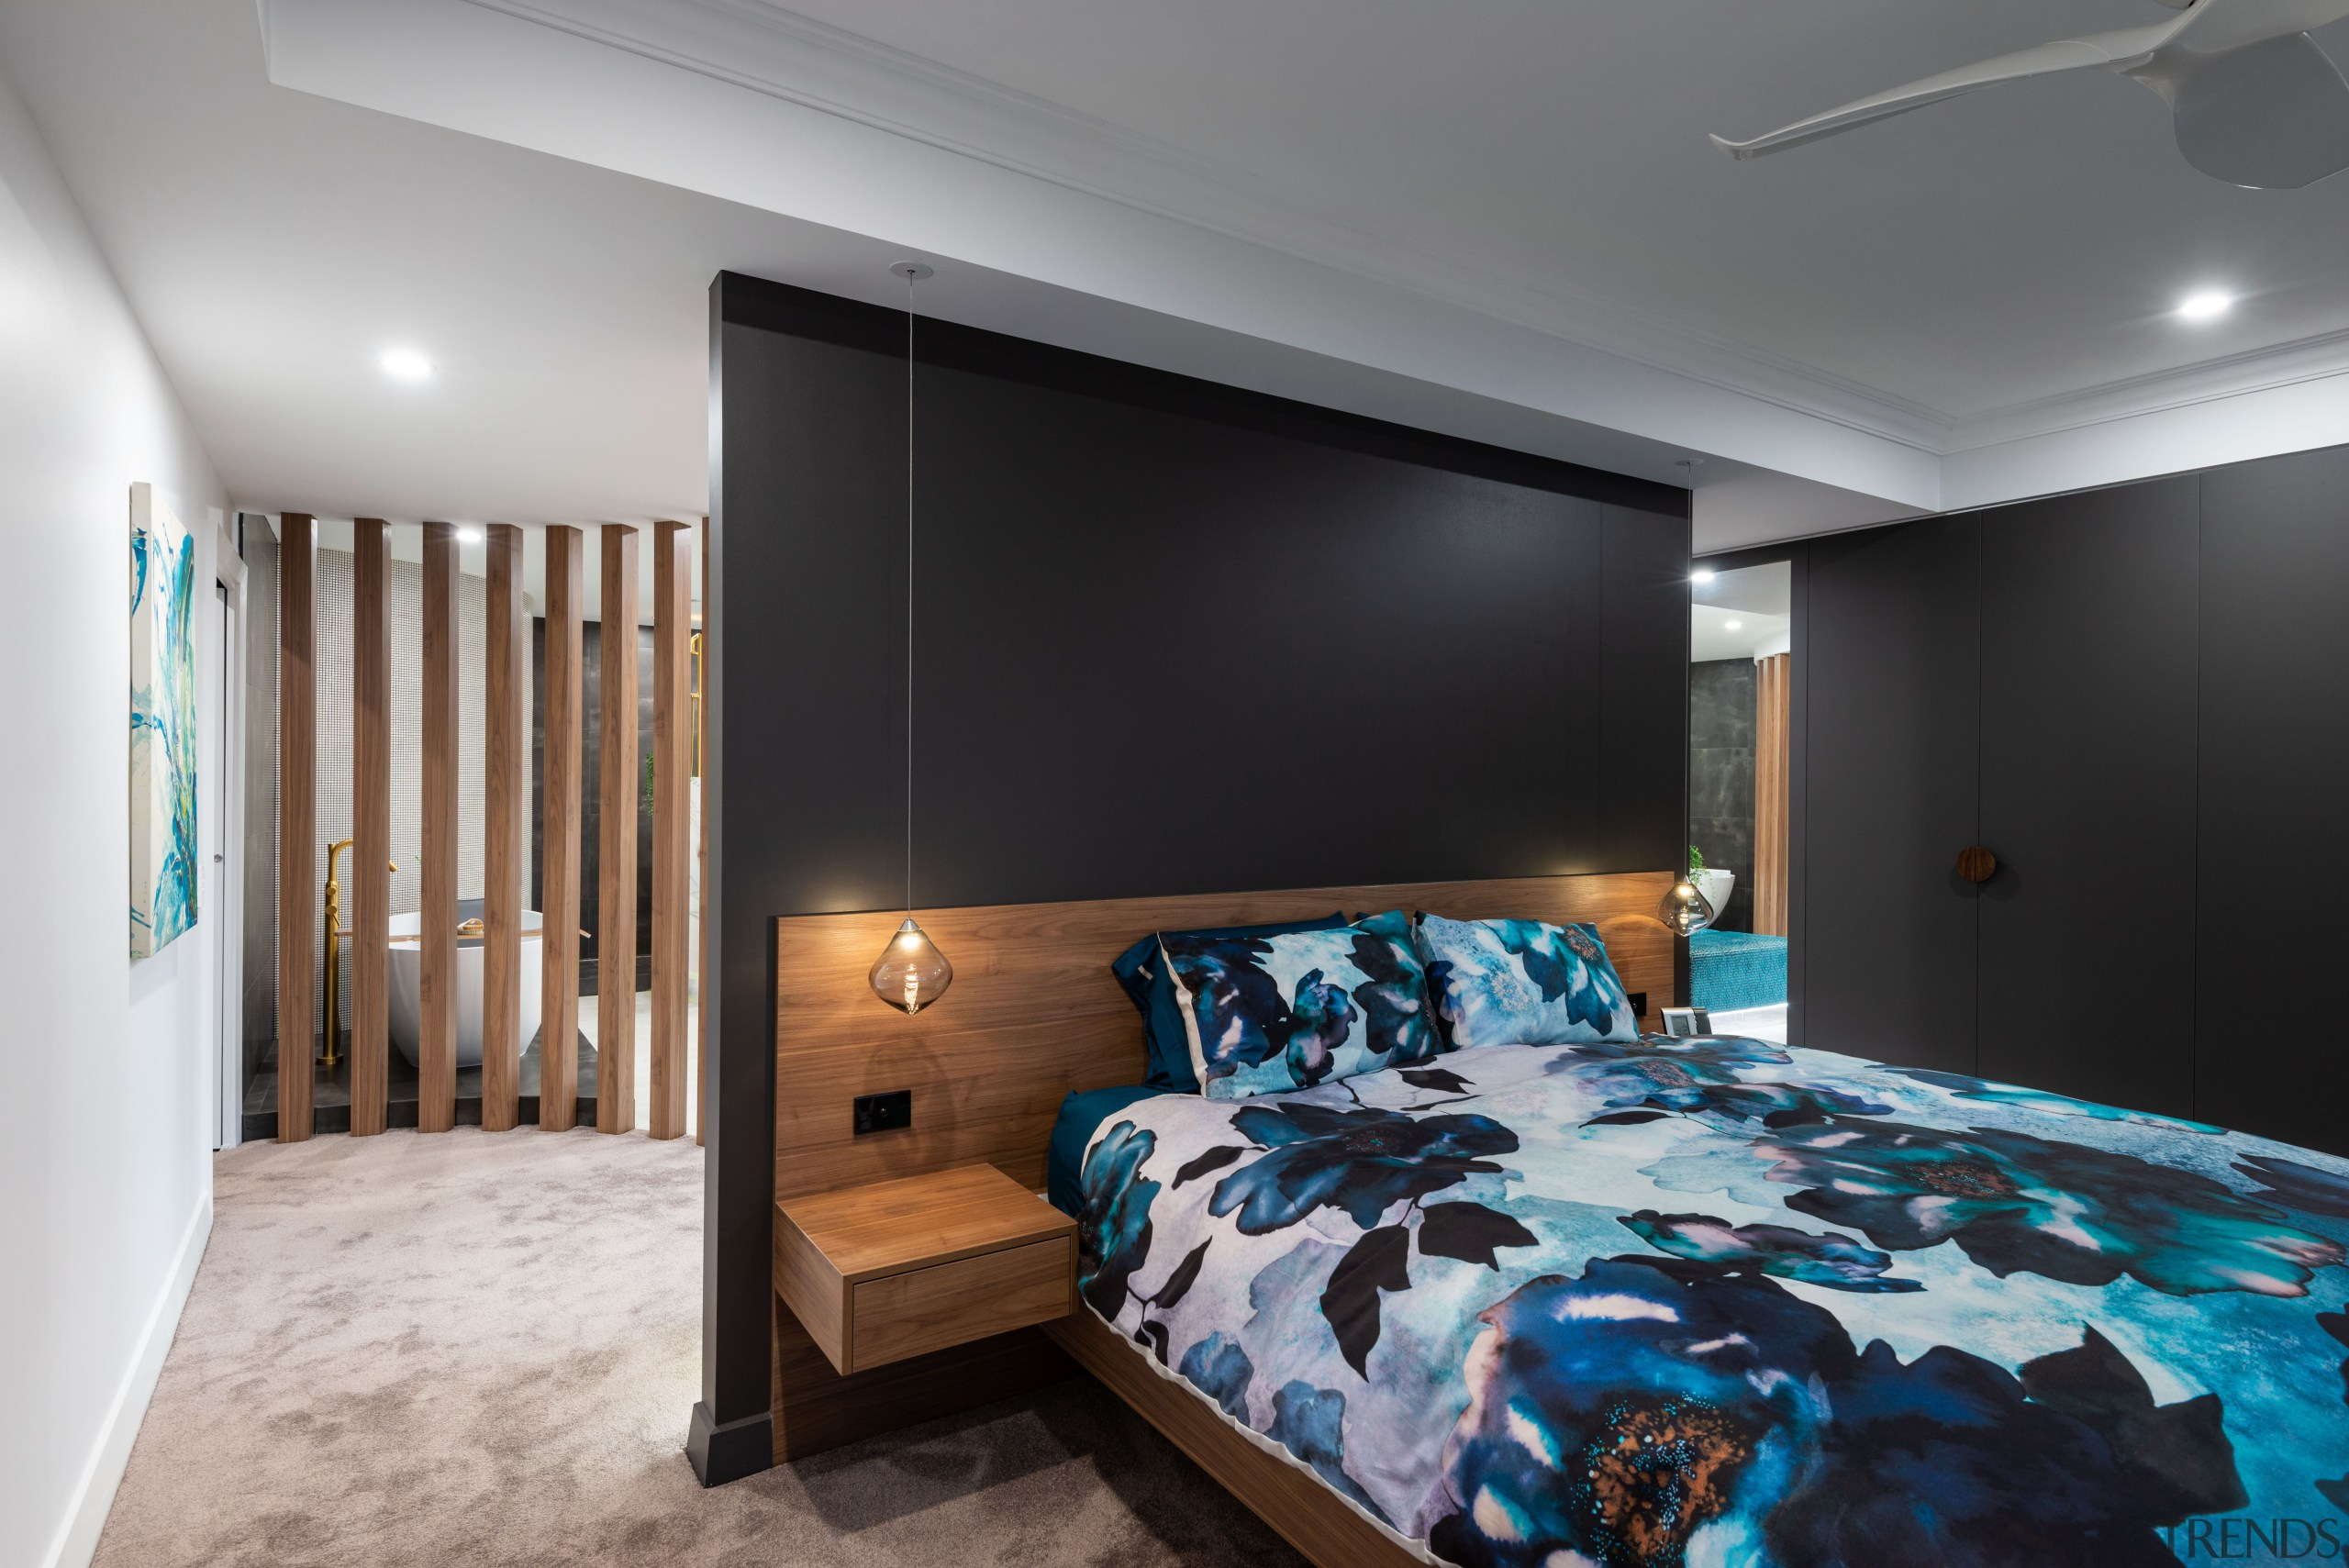 Dark wall and cabinet tones accentuate the warmth architecture, bed, bed frame, bed sheet, bedding, bedroom, building, ceiling, floor, furniture, hardwood, home, house, interior design, linens, loft, mattress, property, real estate, room, suite, wall, wood flooring, gray, black